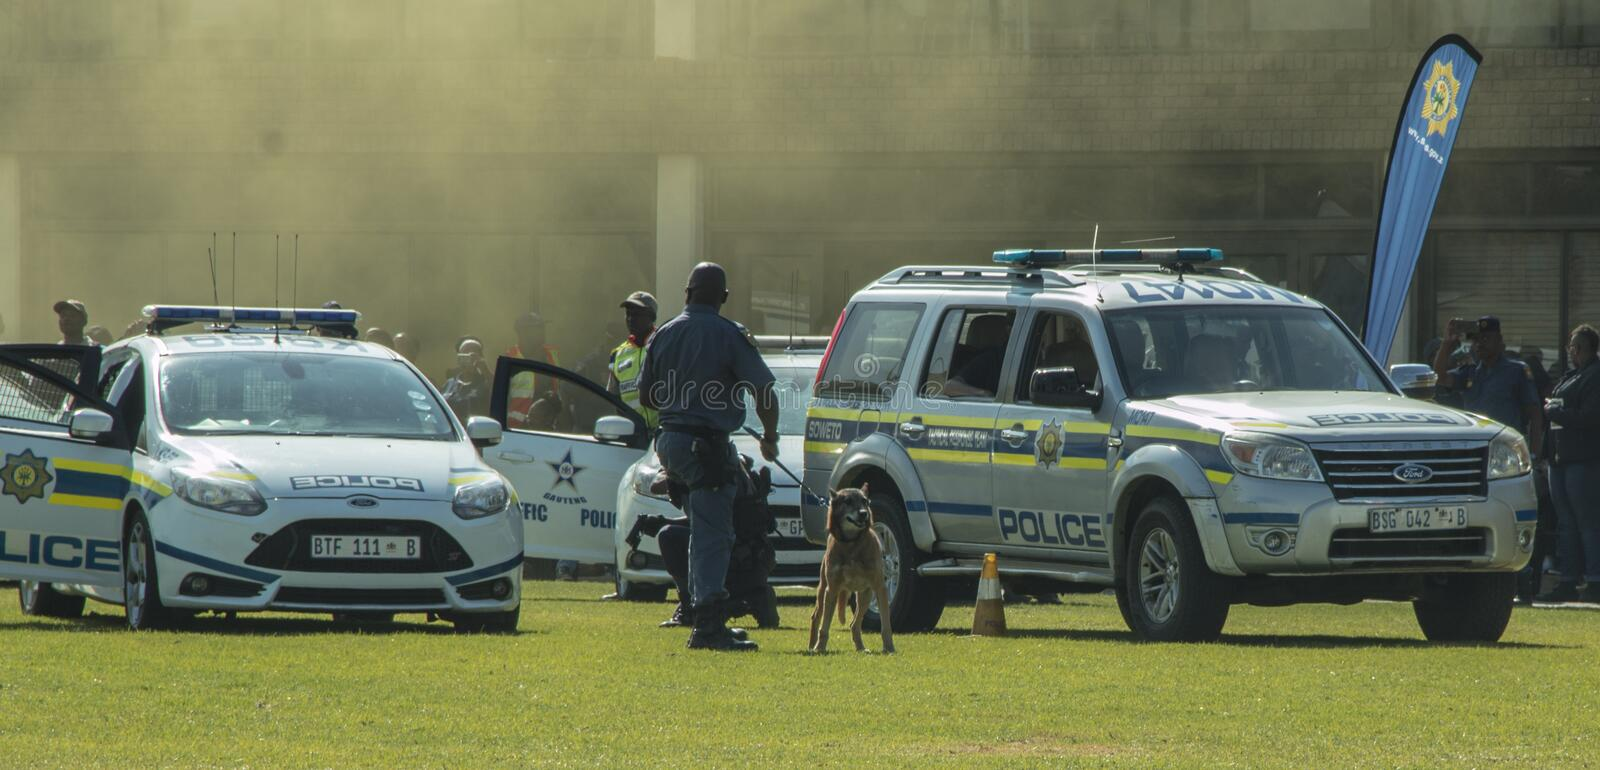 South African Police Service - Forensics Unit on the scene royalty free stock image